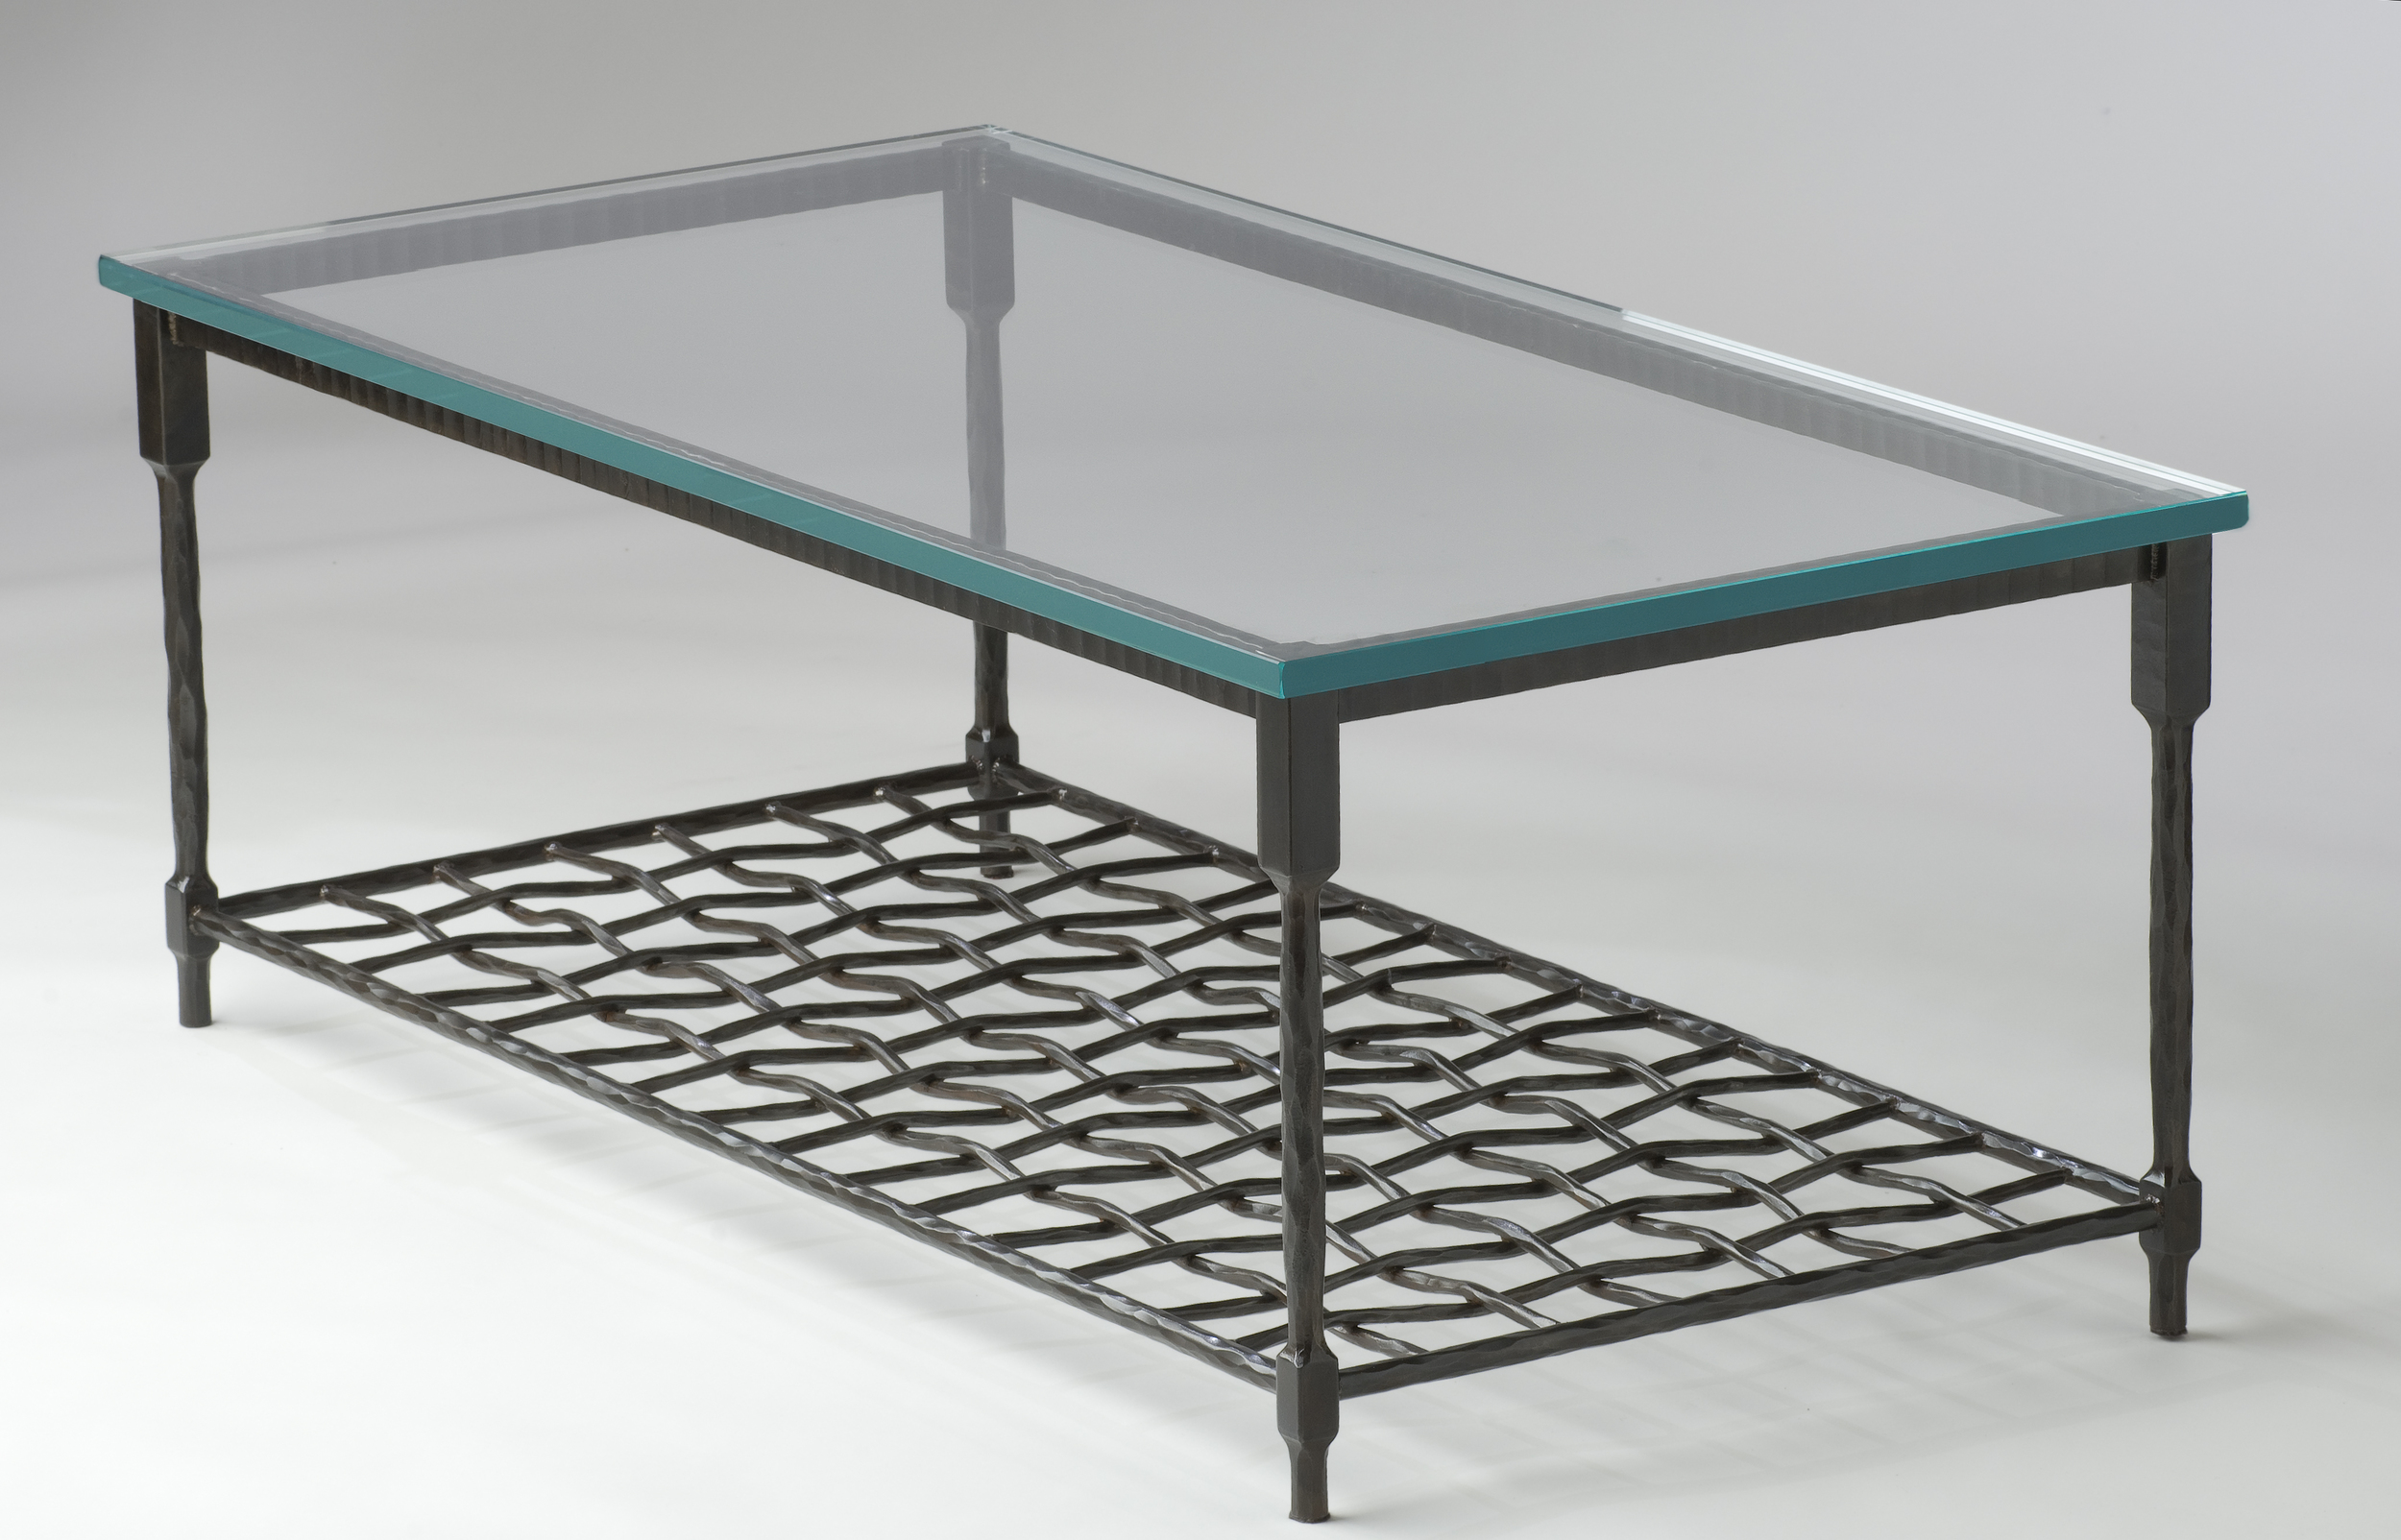 Forged Leg Coffee Table With Woven Shelf